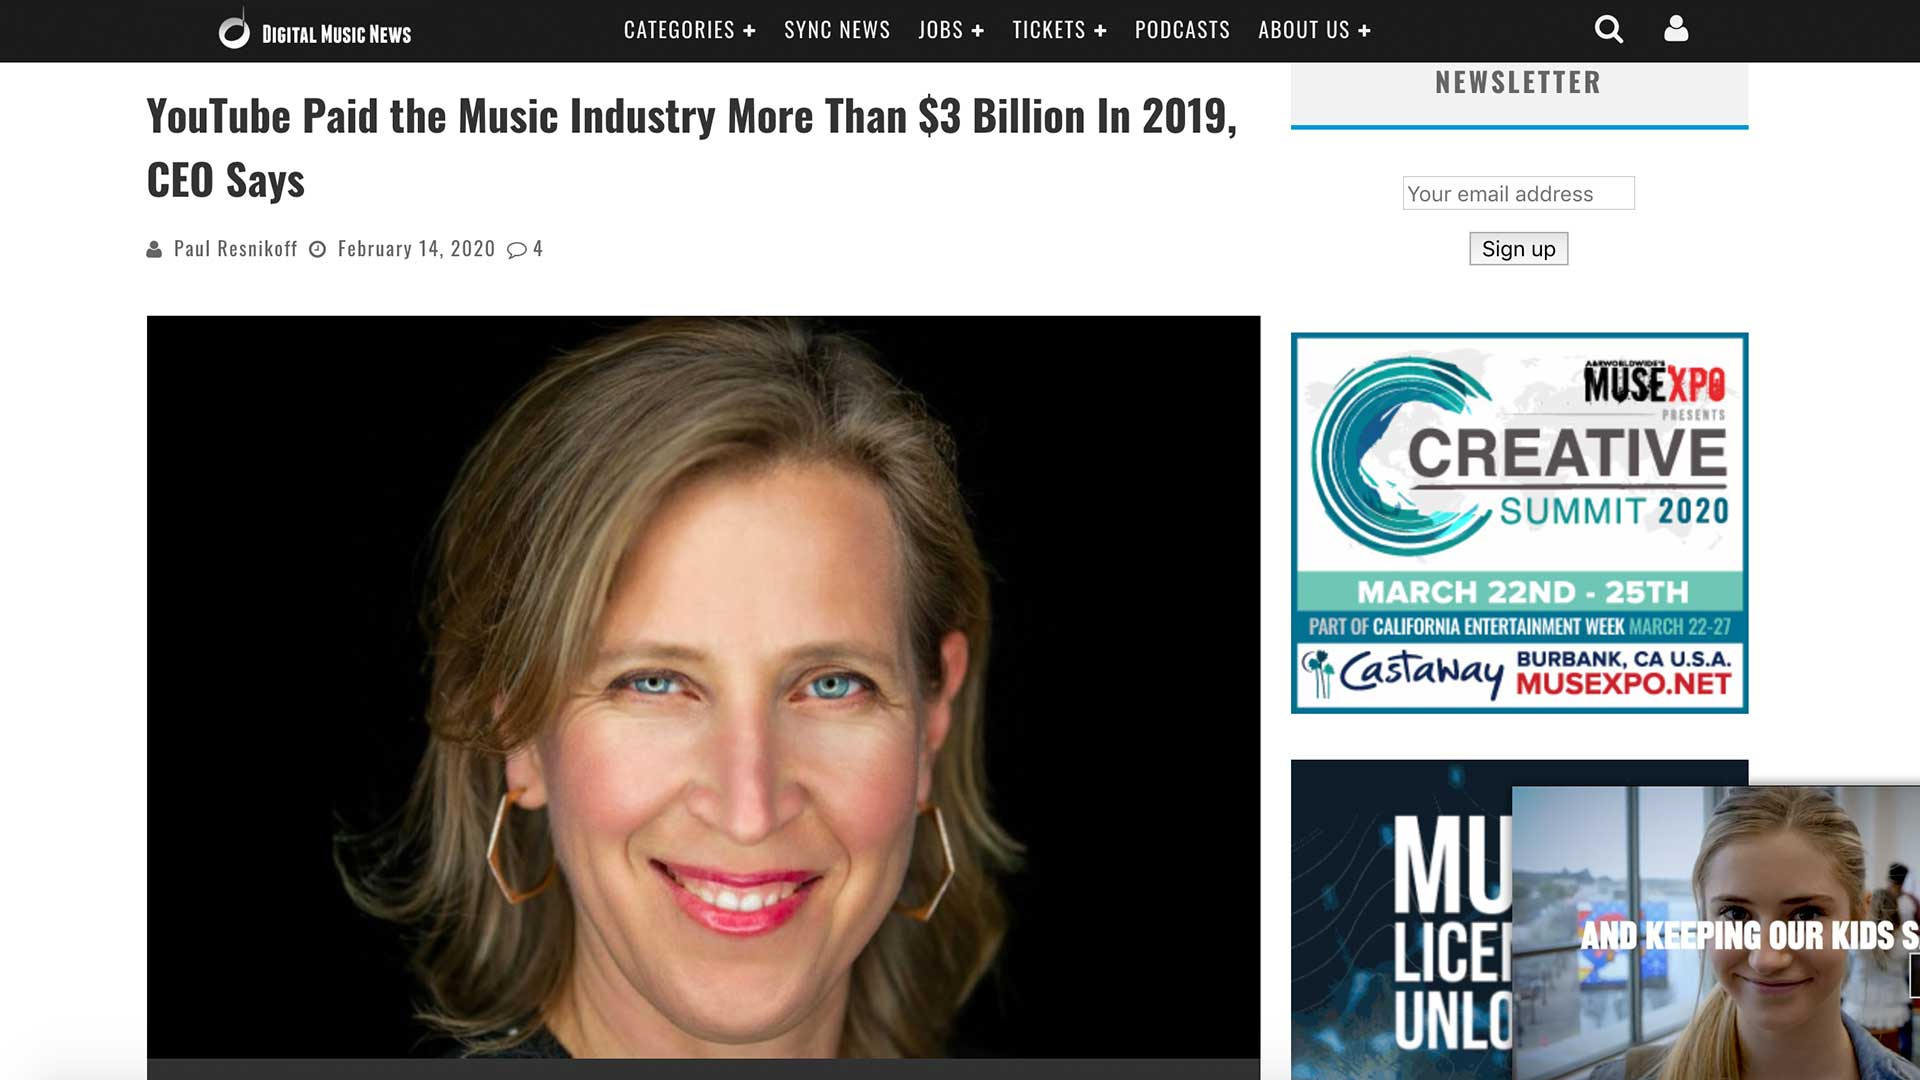 Fairness Rocks News YouTube Paid the Music Industry More Than $3 Billion In 2019, CEO Says